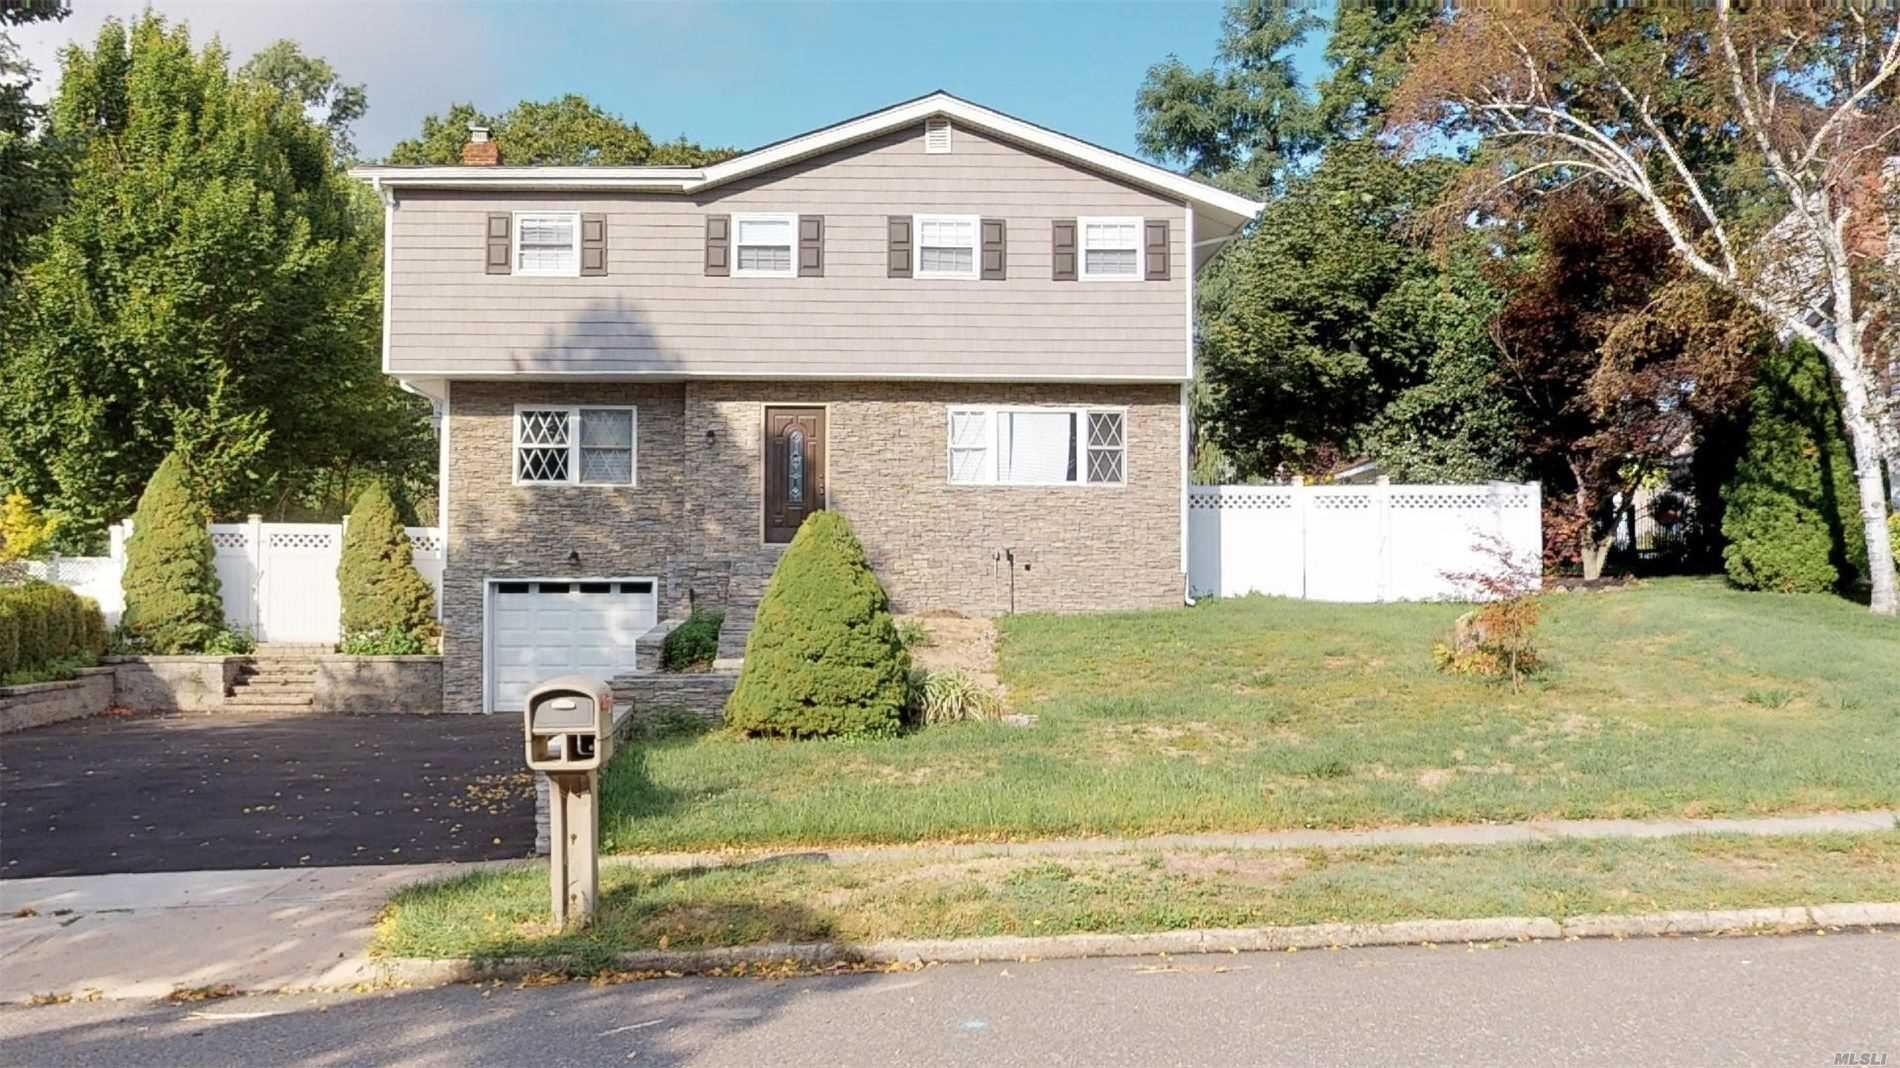 54 Gristmill Drive, Kings Park, NY 11754 - MLS#: 3193950